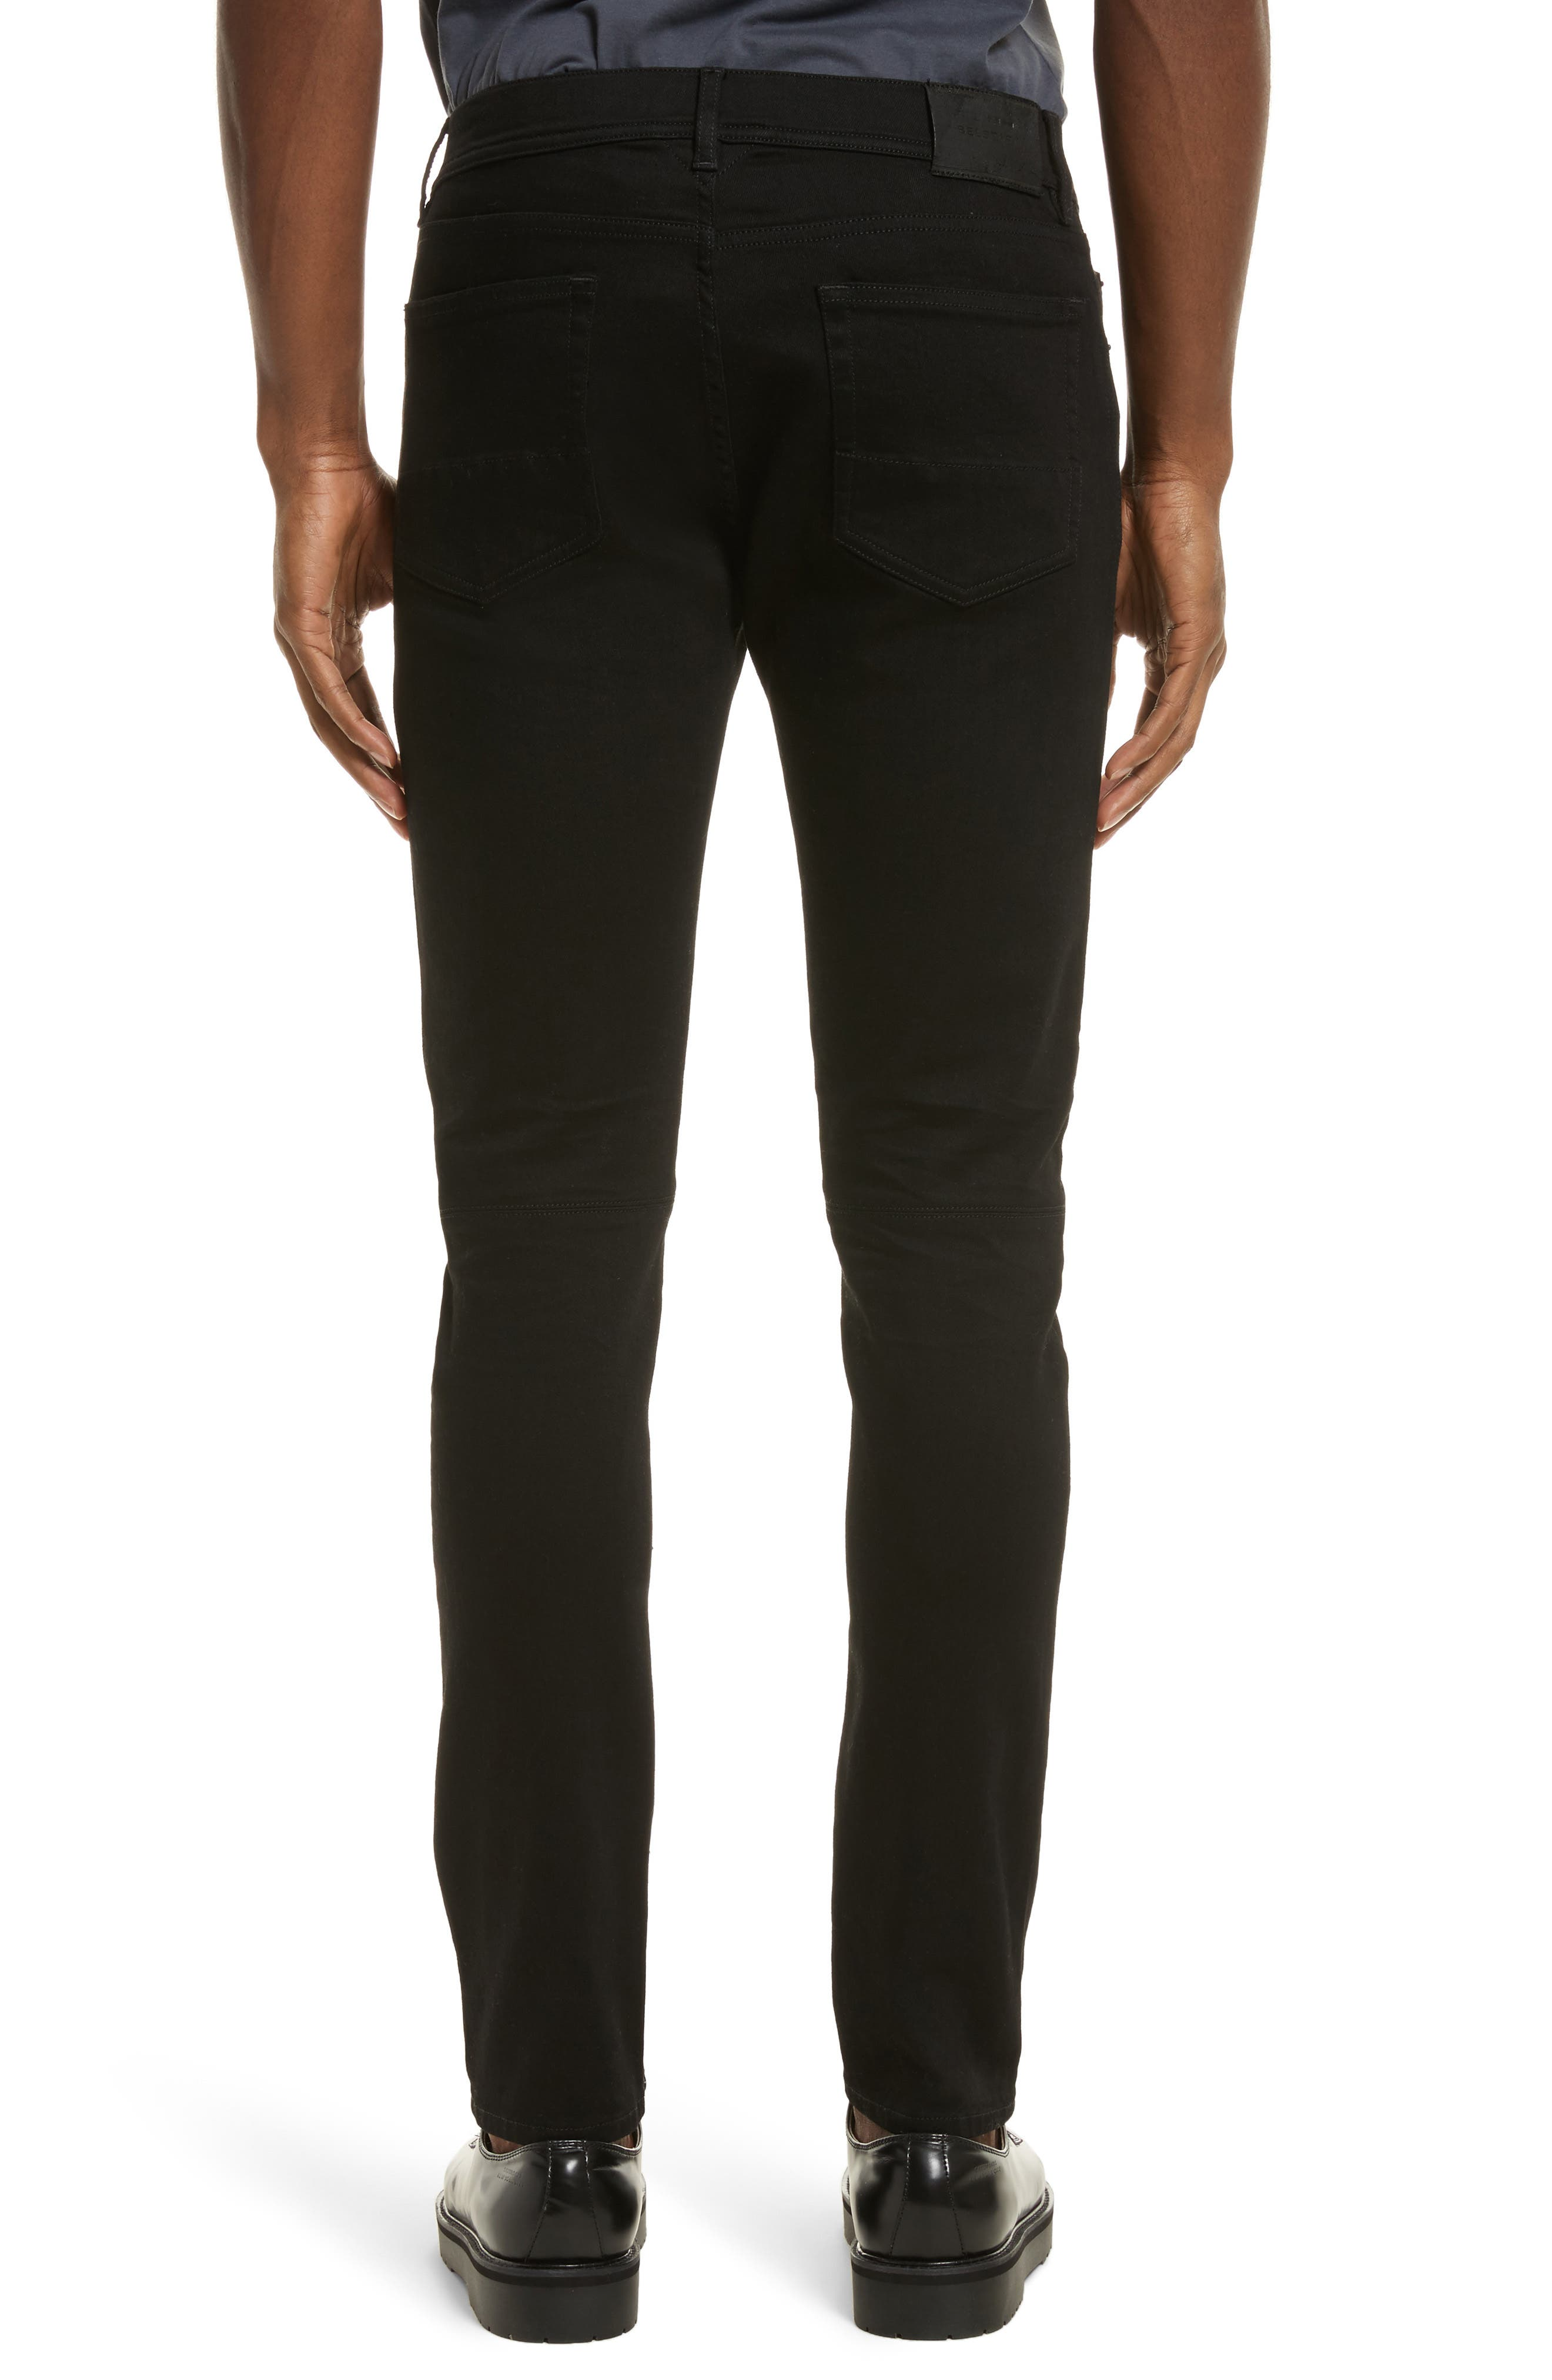 Tattenhall Slim Fit Jeans,                             Alternate thumbnail 2, color,                             Rinse Black